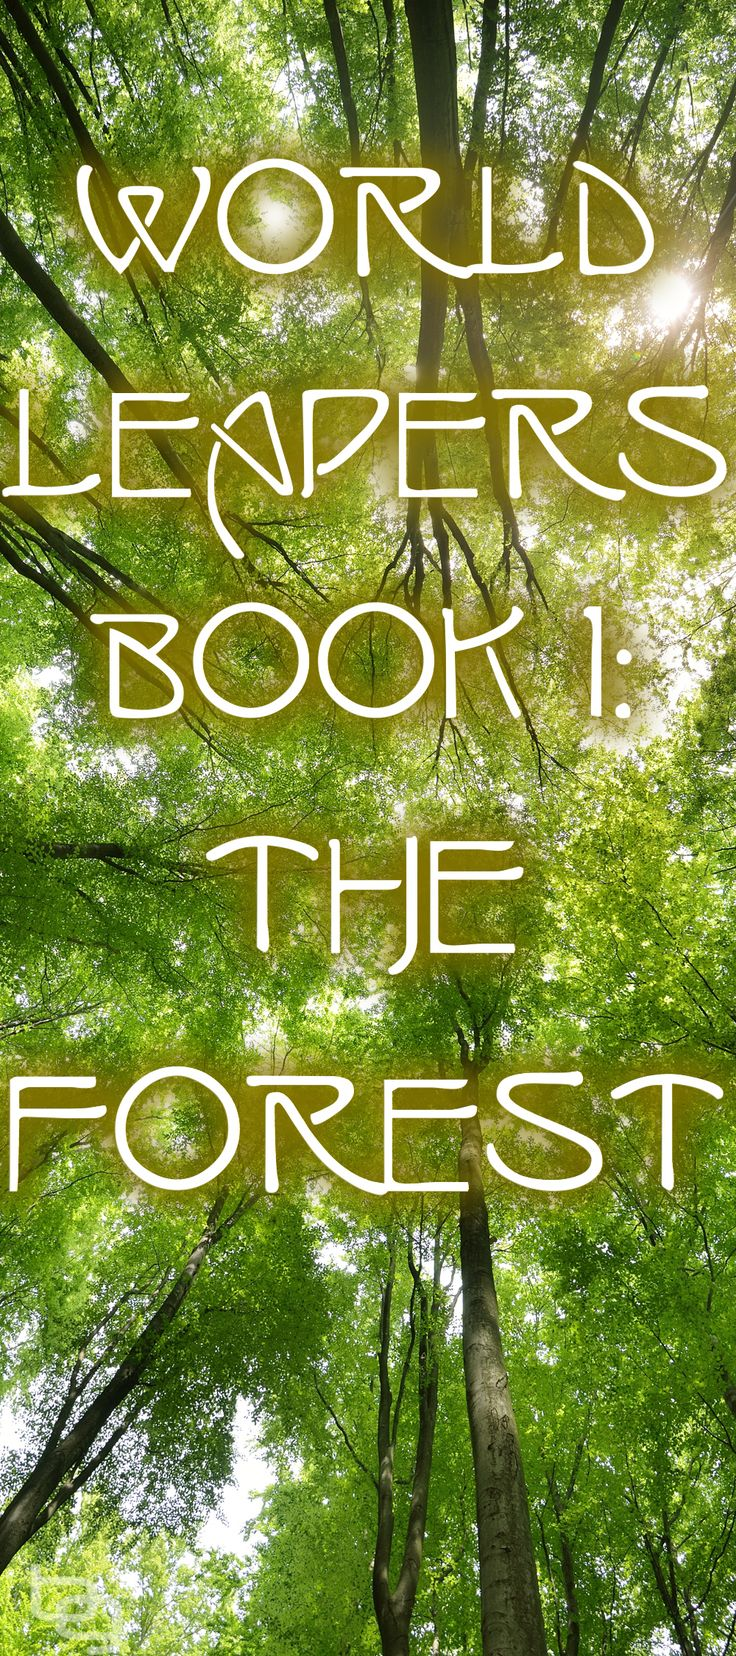 31 best reading list images on pinterest book lists playlists and world leapers book i the forest fandeluxe Choice Image